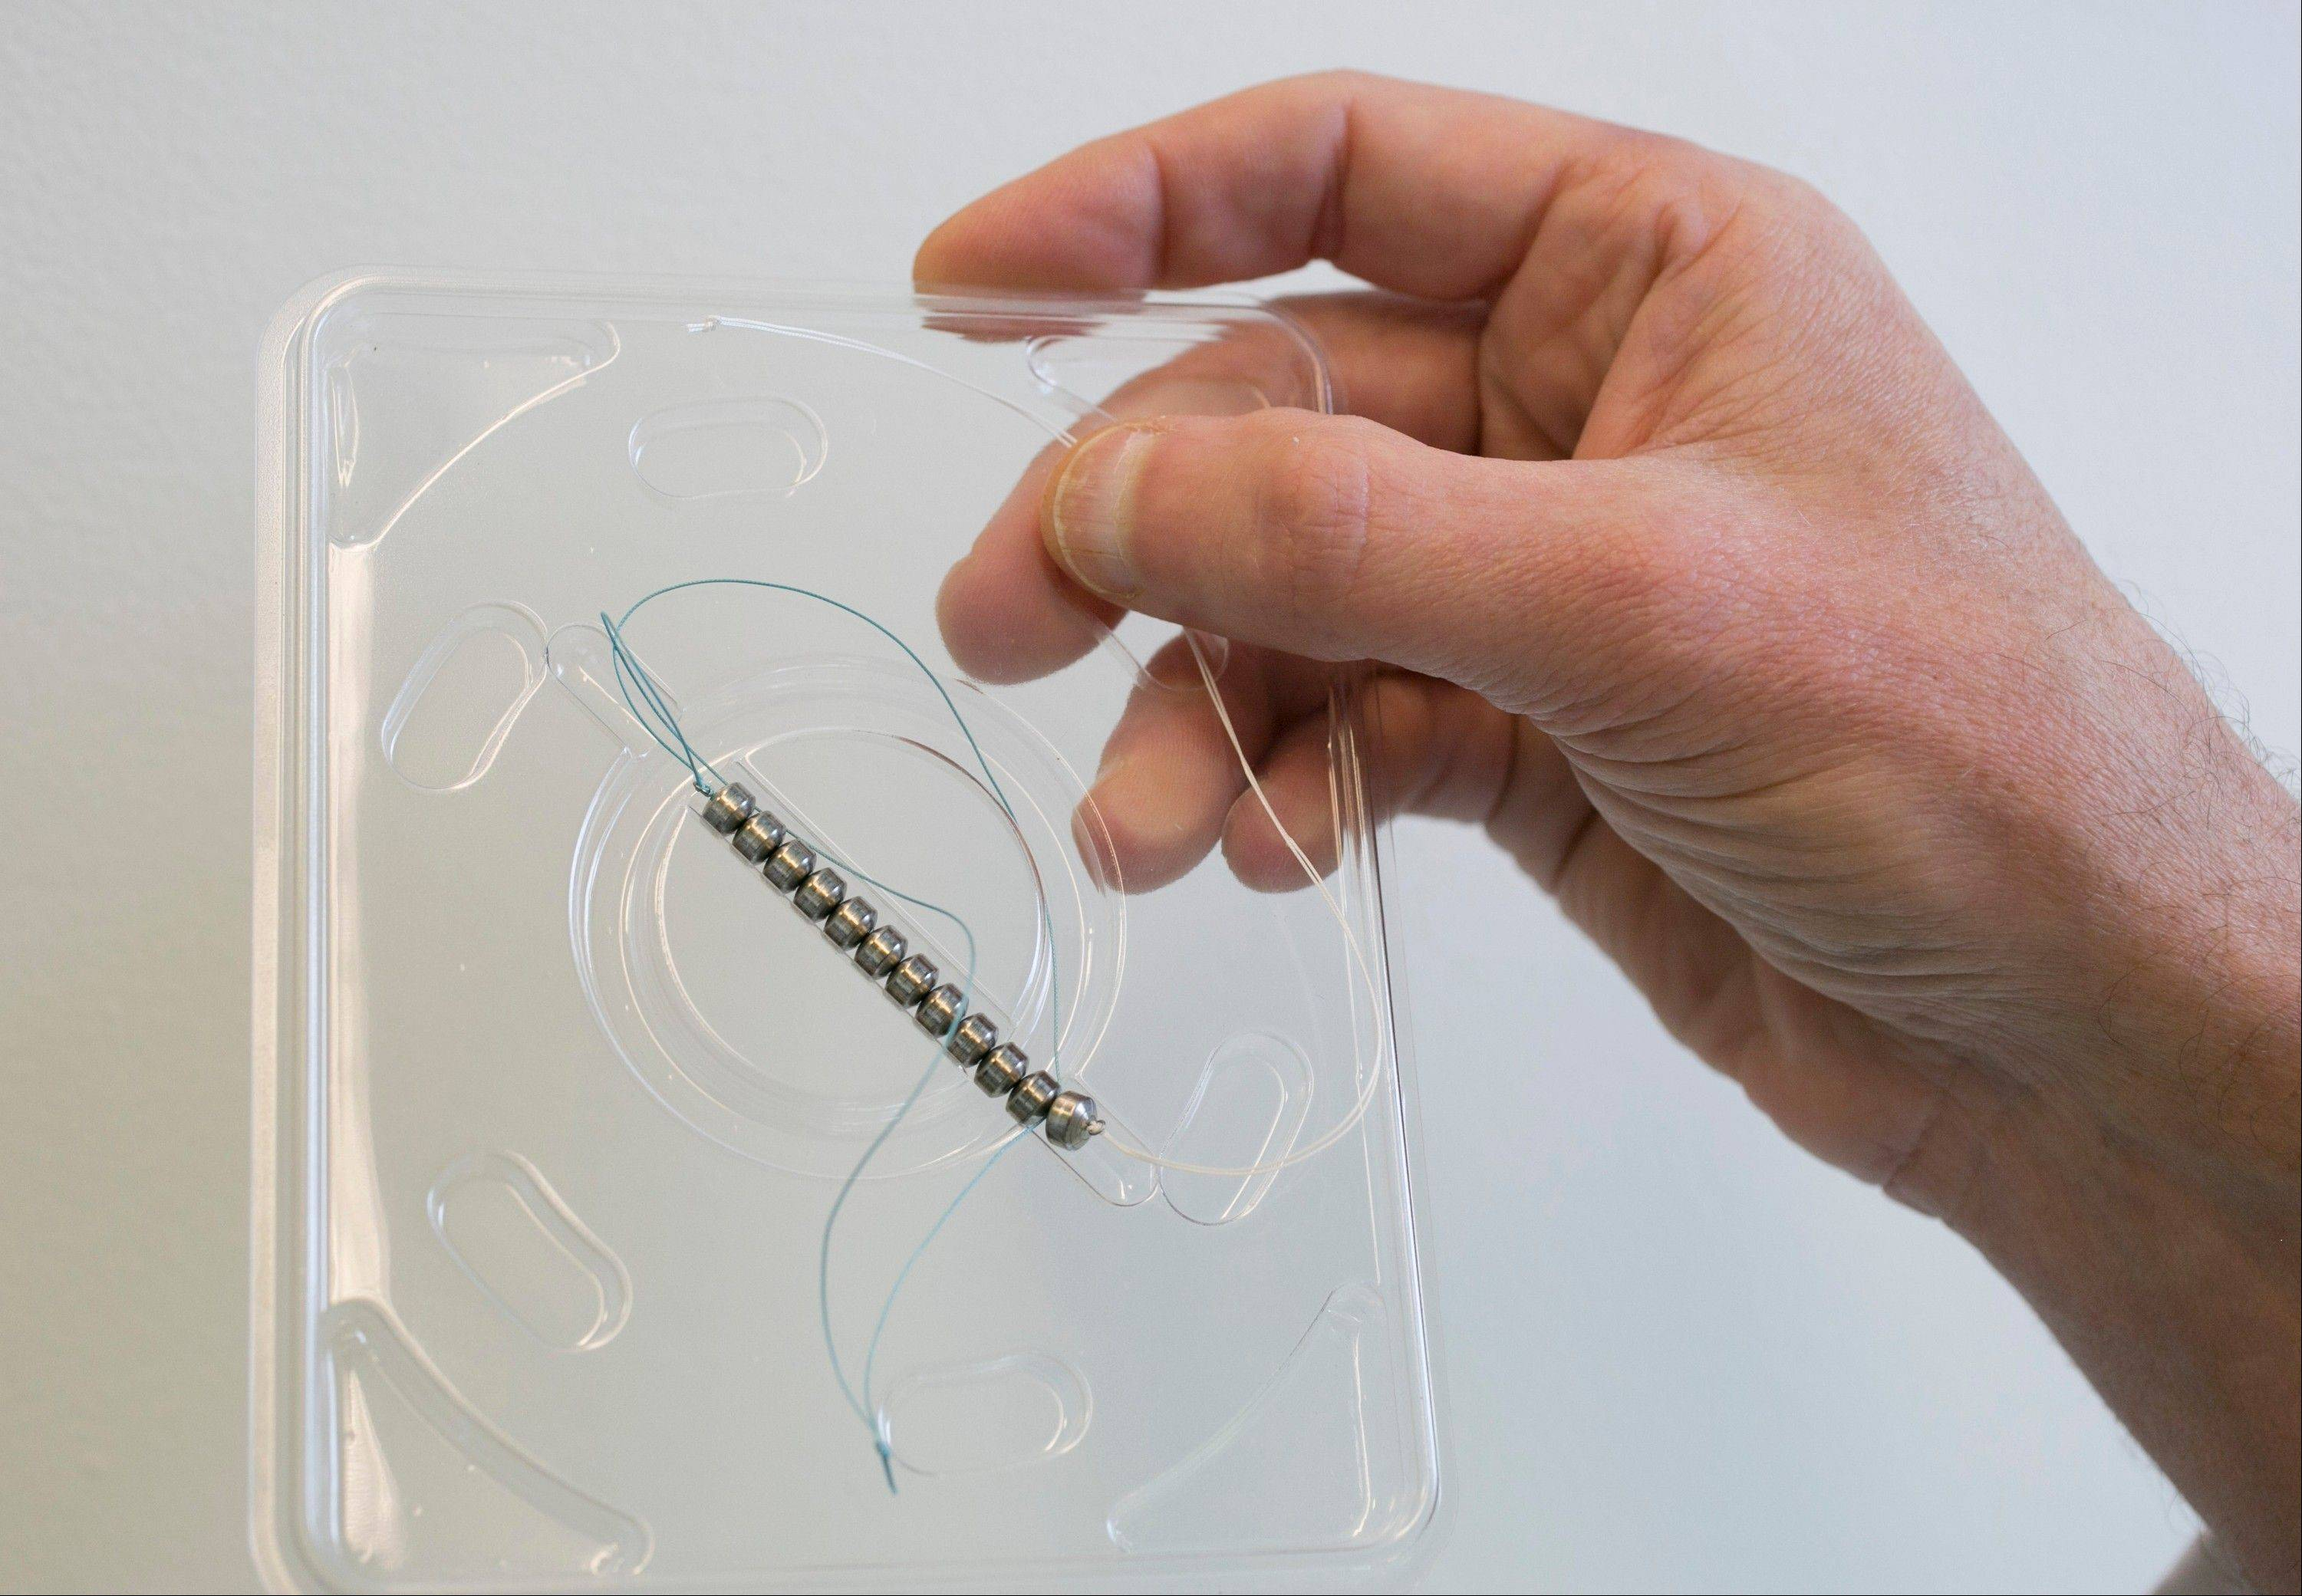 Surgeon Dr. John Lipham holds a sample LINX device, which is designed to help the esophageal sphincter stay closed to stop the reflux. It uses a small, flexible band of beads with each bead carrying a magnet inside.